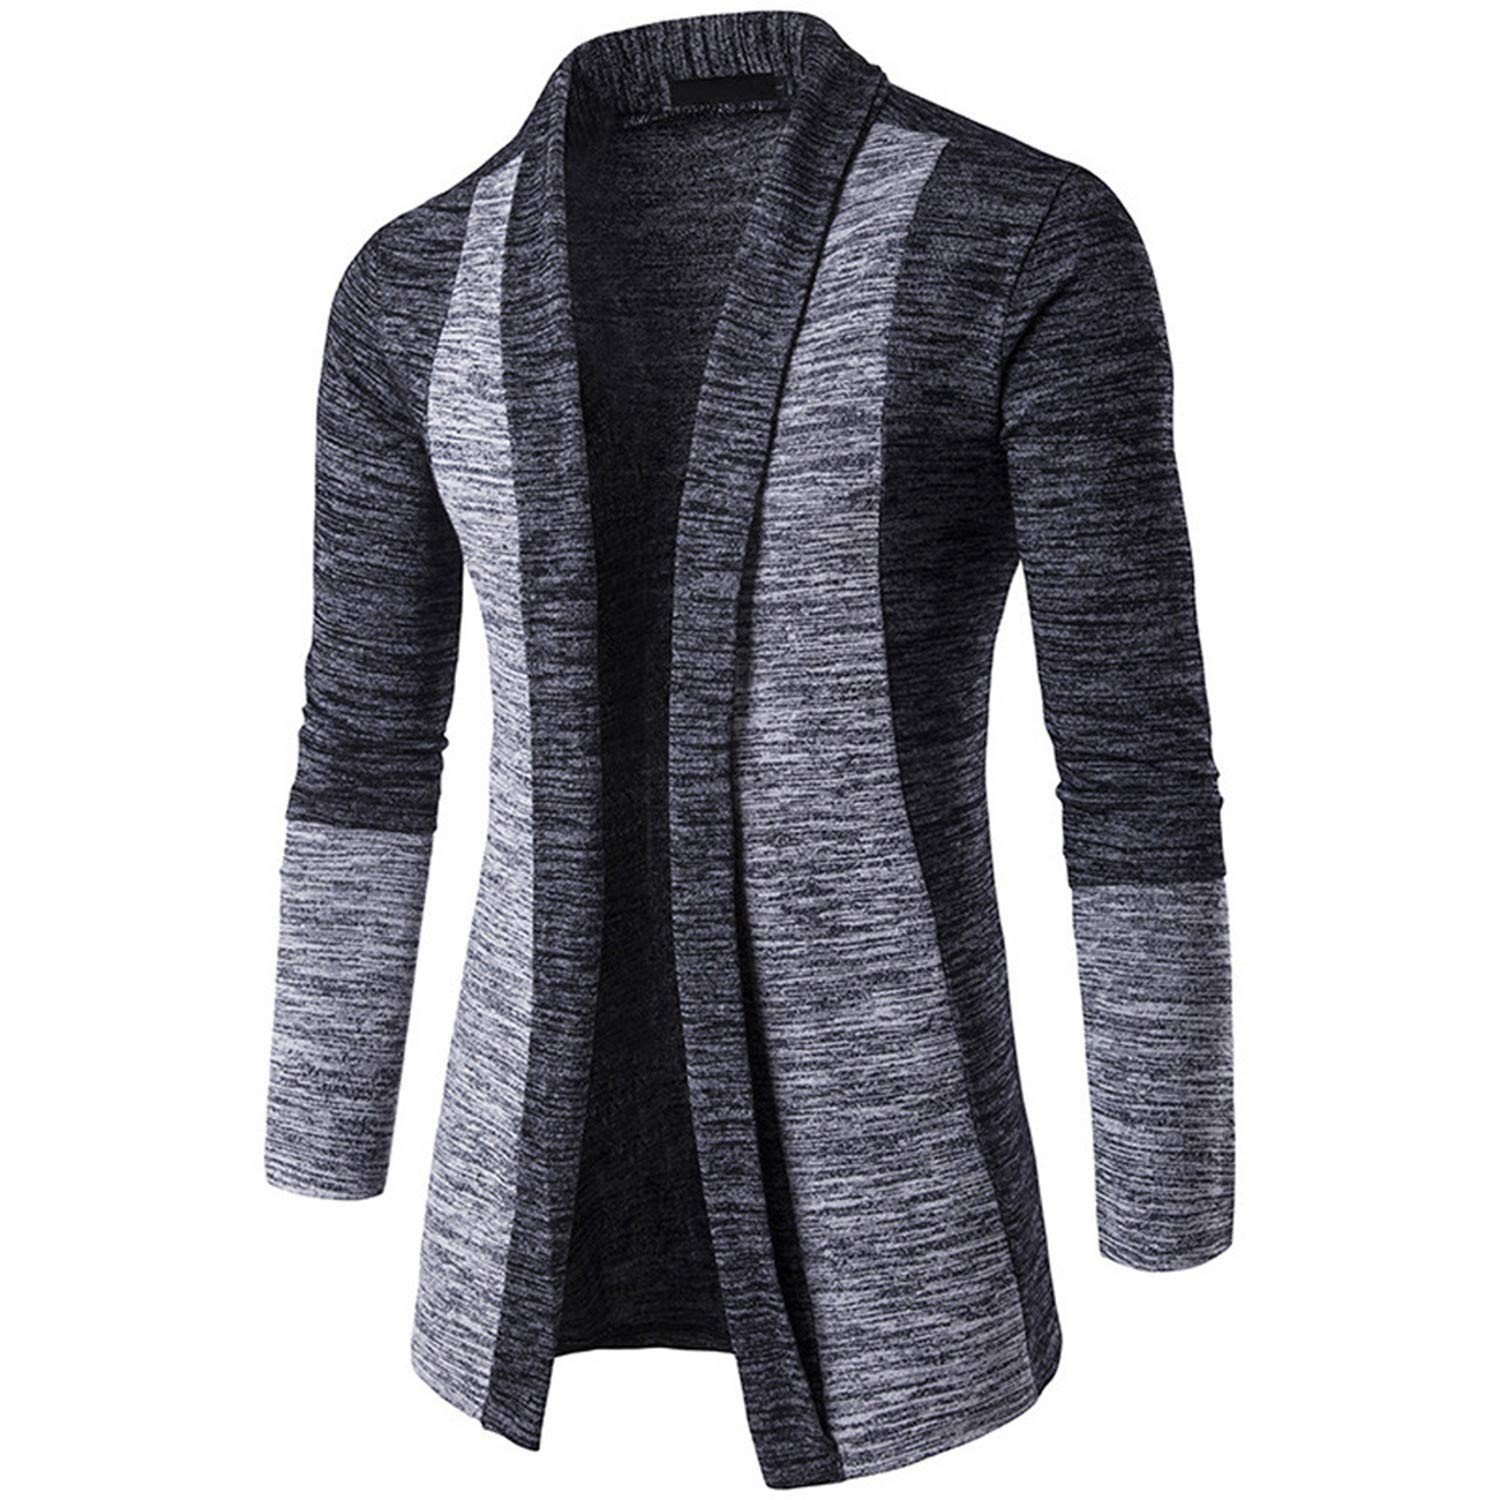 Amazon.com: Jacket Winter Warm Knit Cardigan Outerwear ...